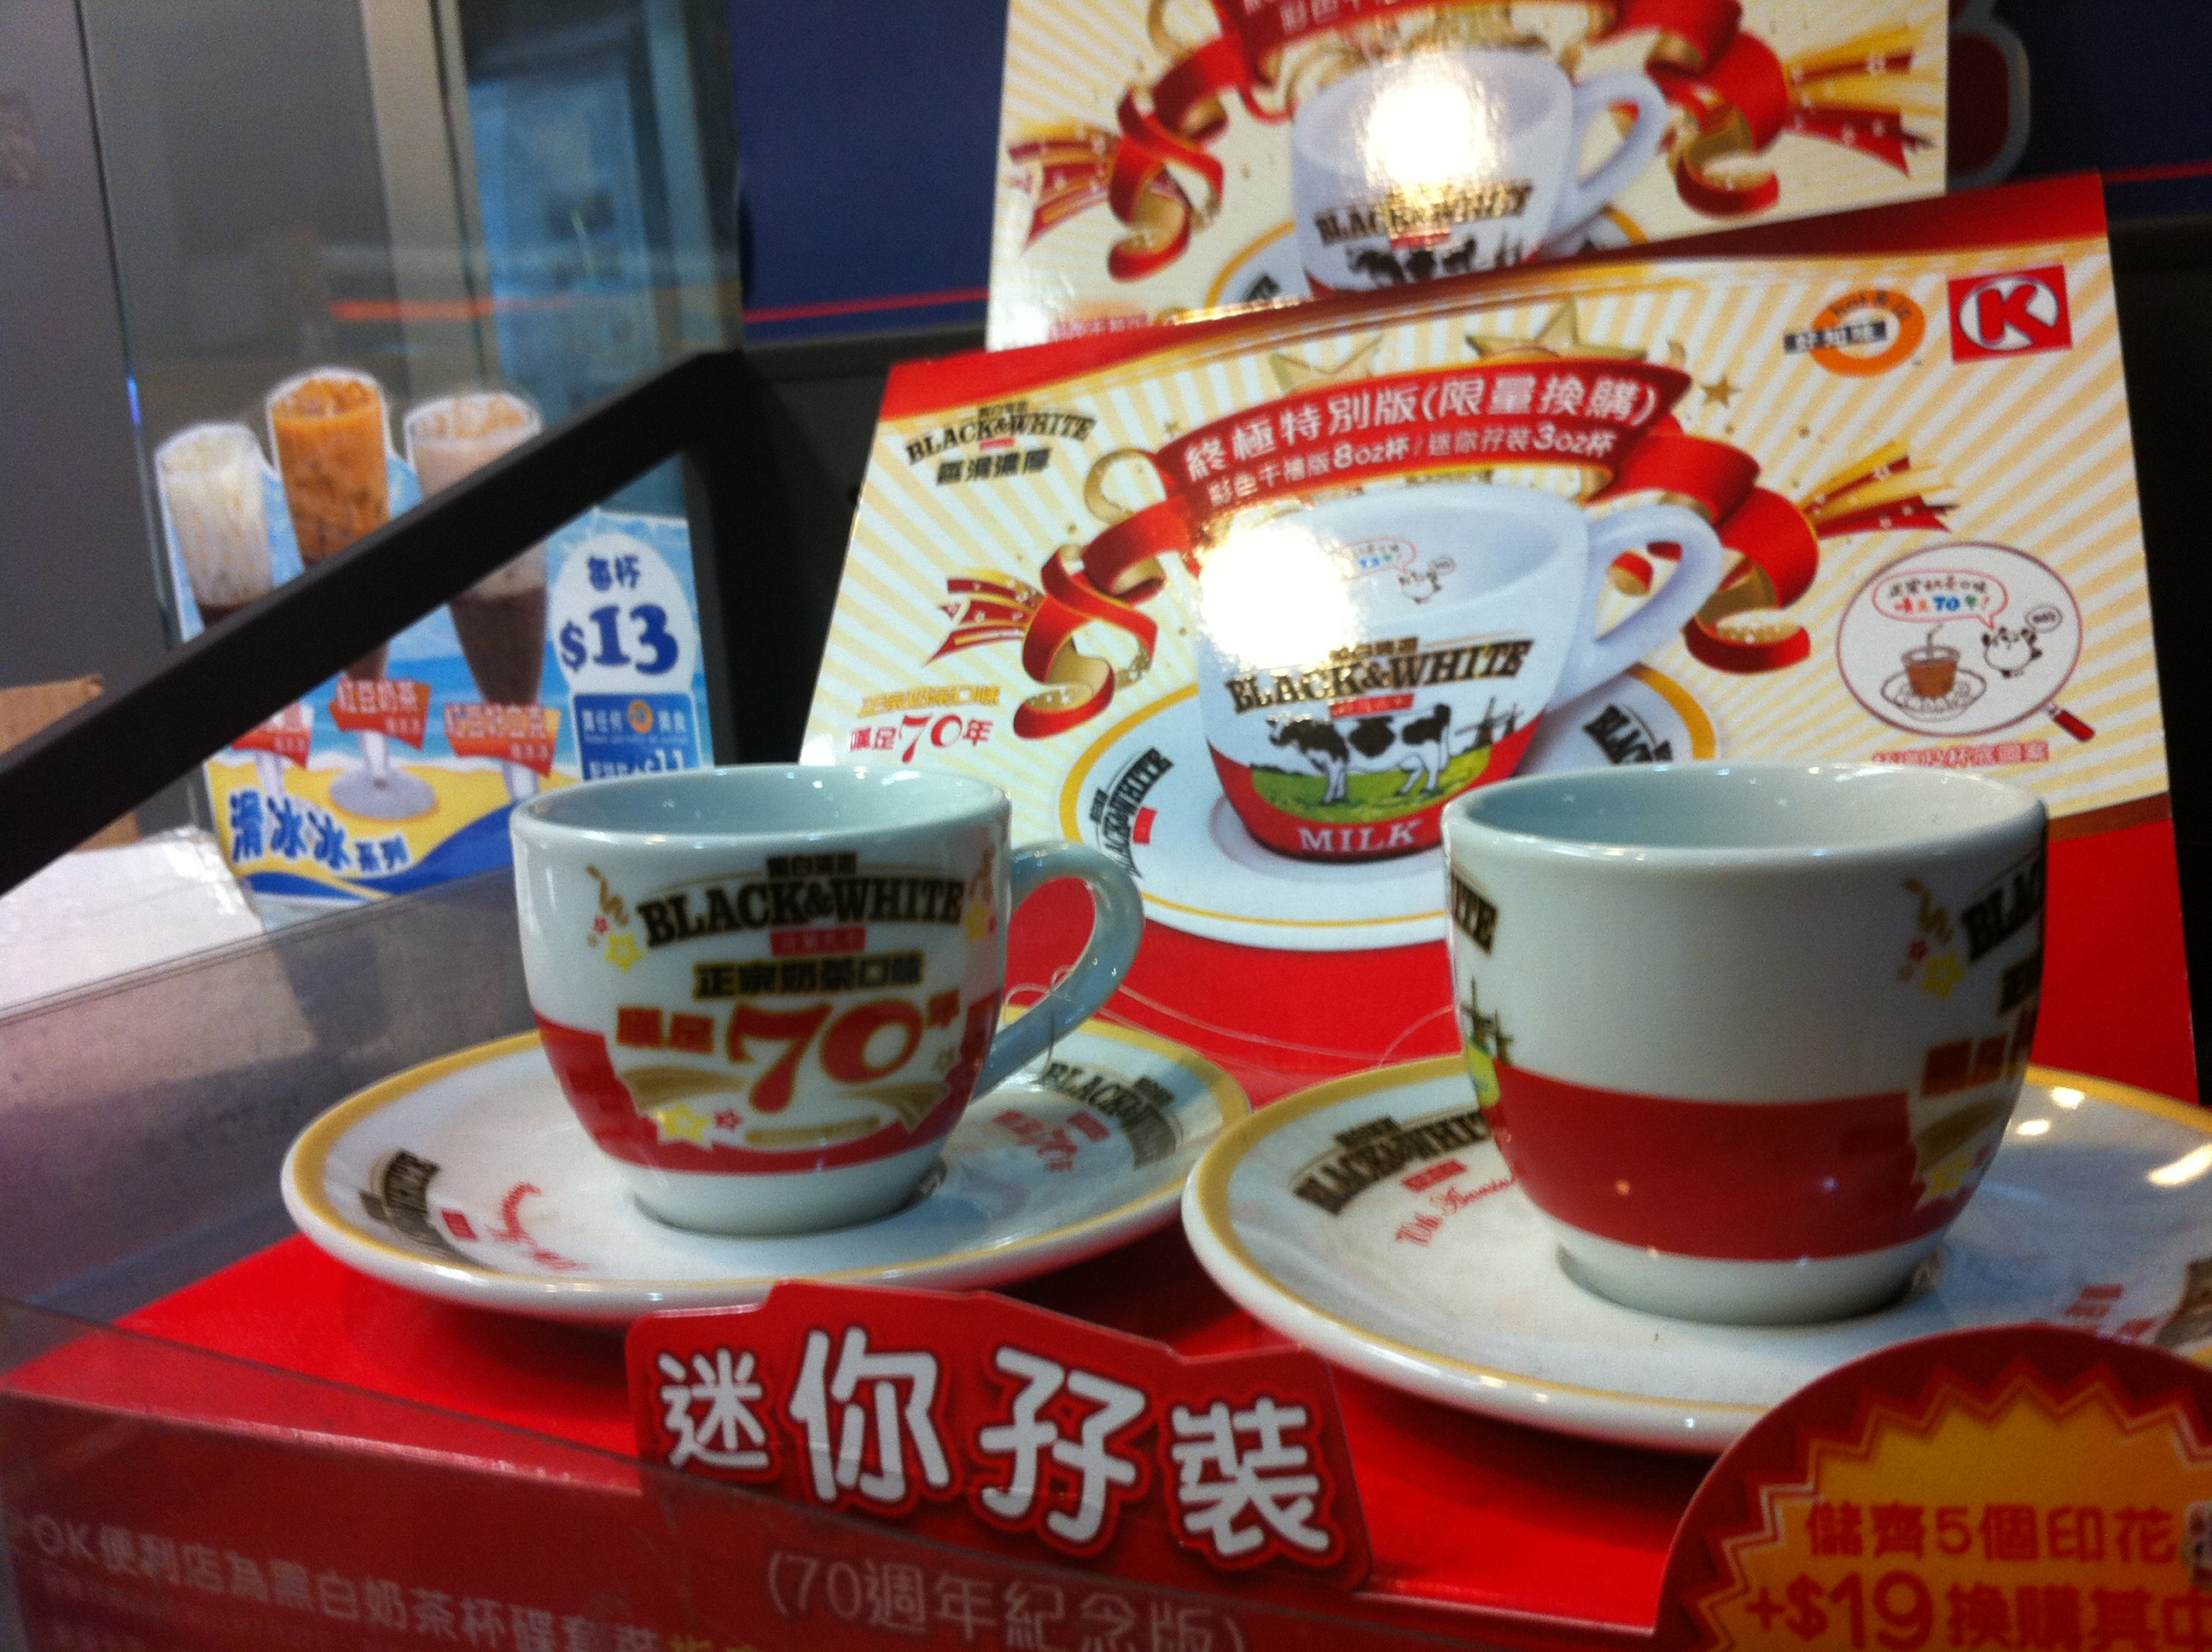 70 year Anniversary PWP promotion - milk cup